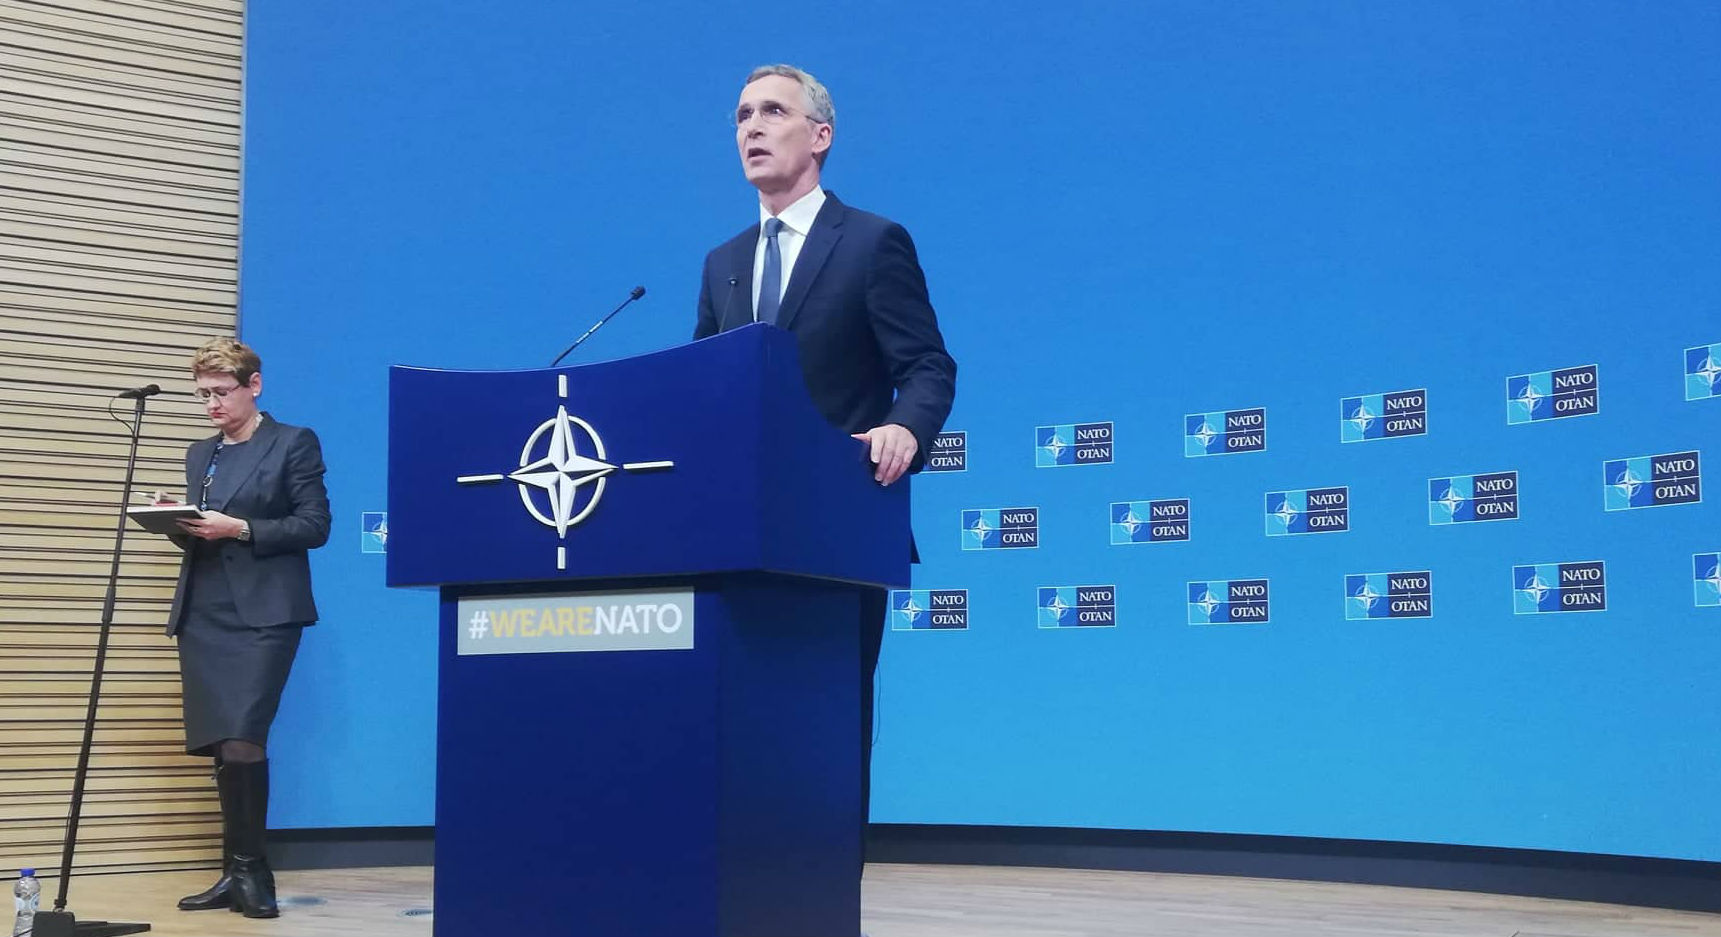 No doubts about the rule of law - Macedonia NATO member in February 2020